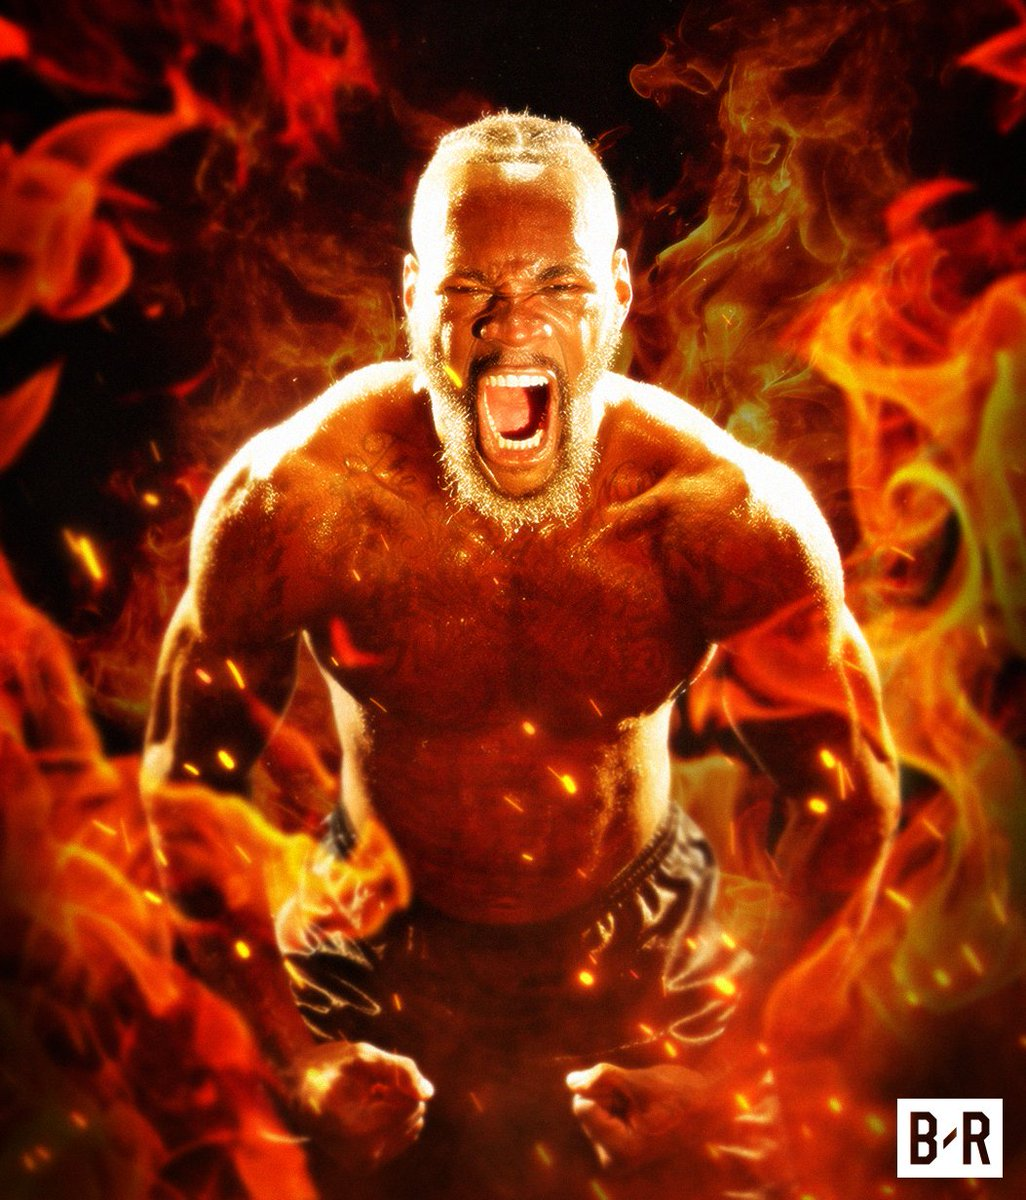 Bleacher Report's photo on Deontay Wilder